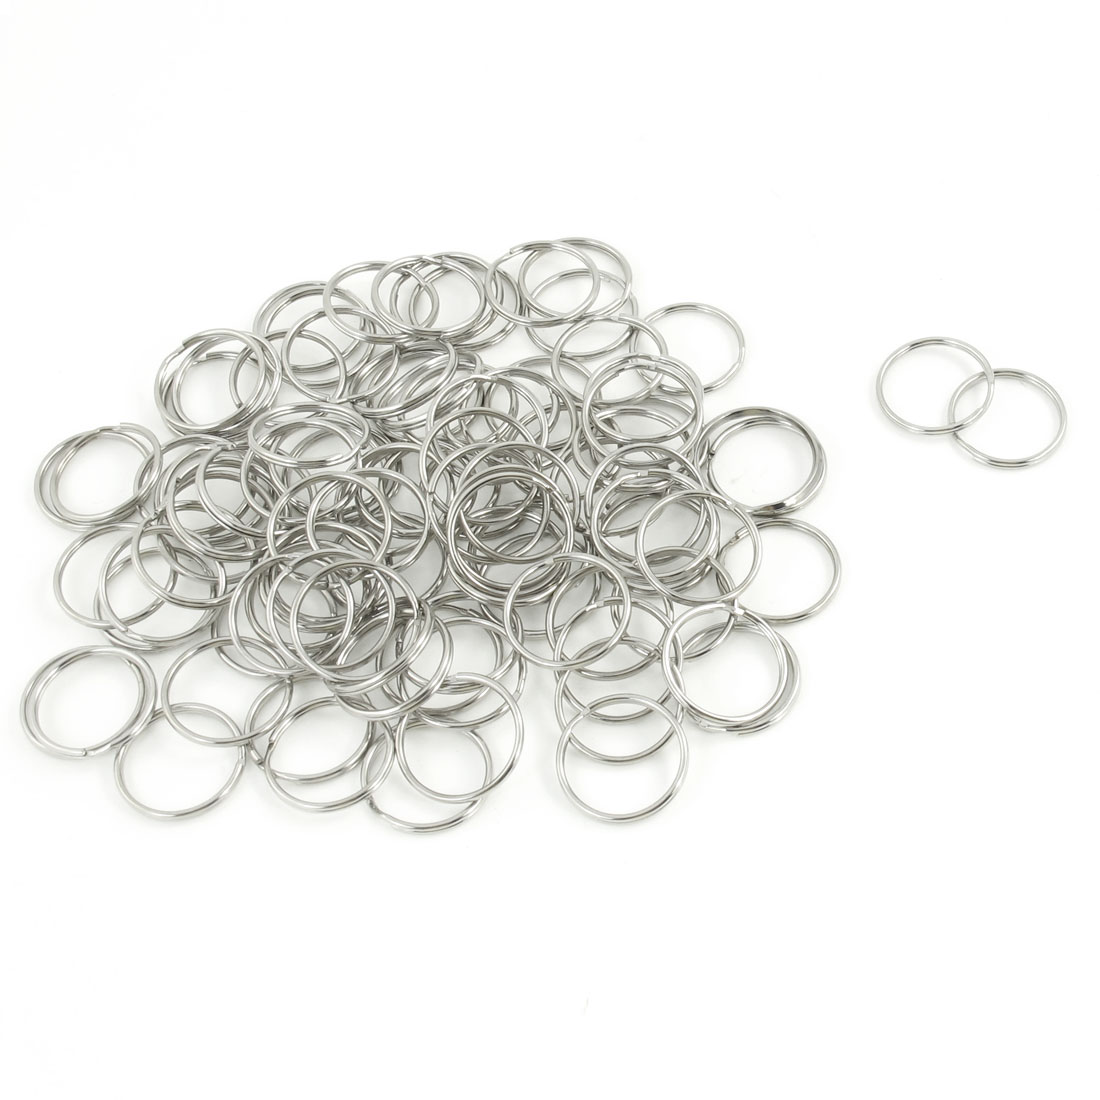 50 Pcs 23mm Diameter Silver Tone Metal Keyring Key Rings